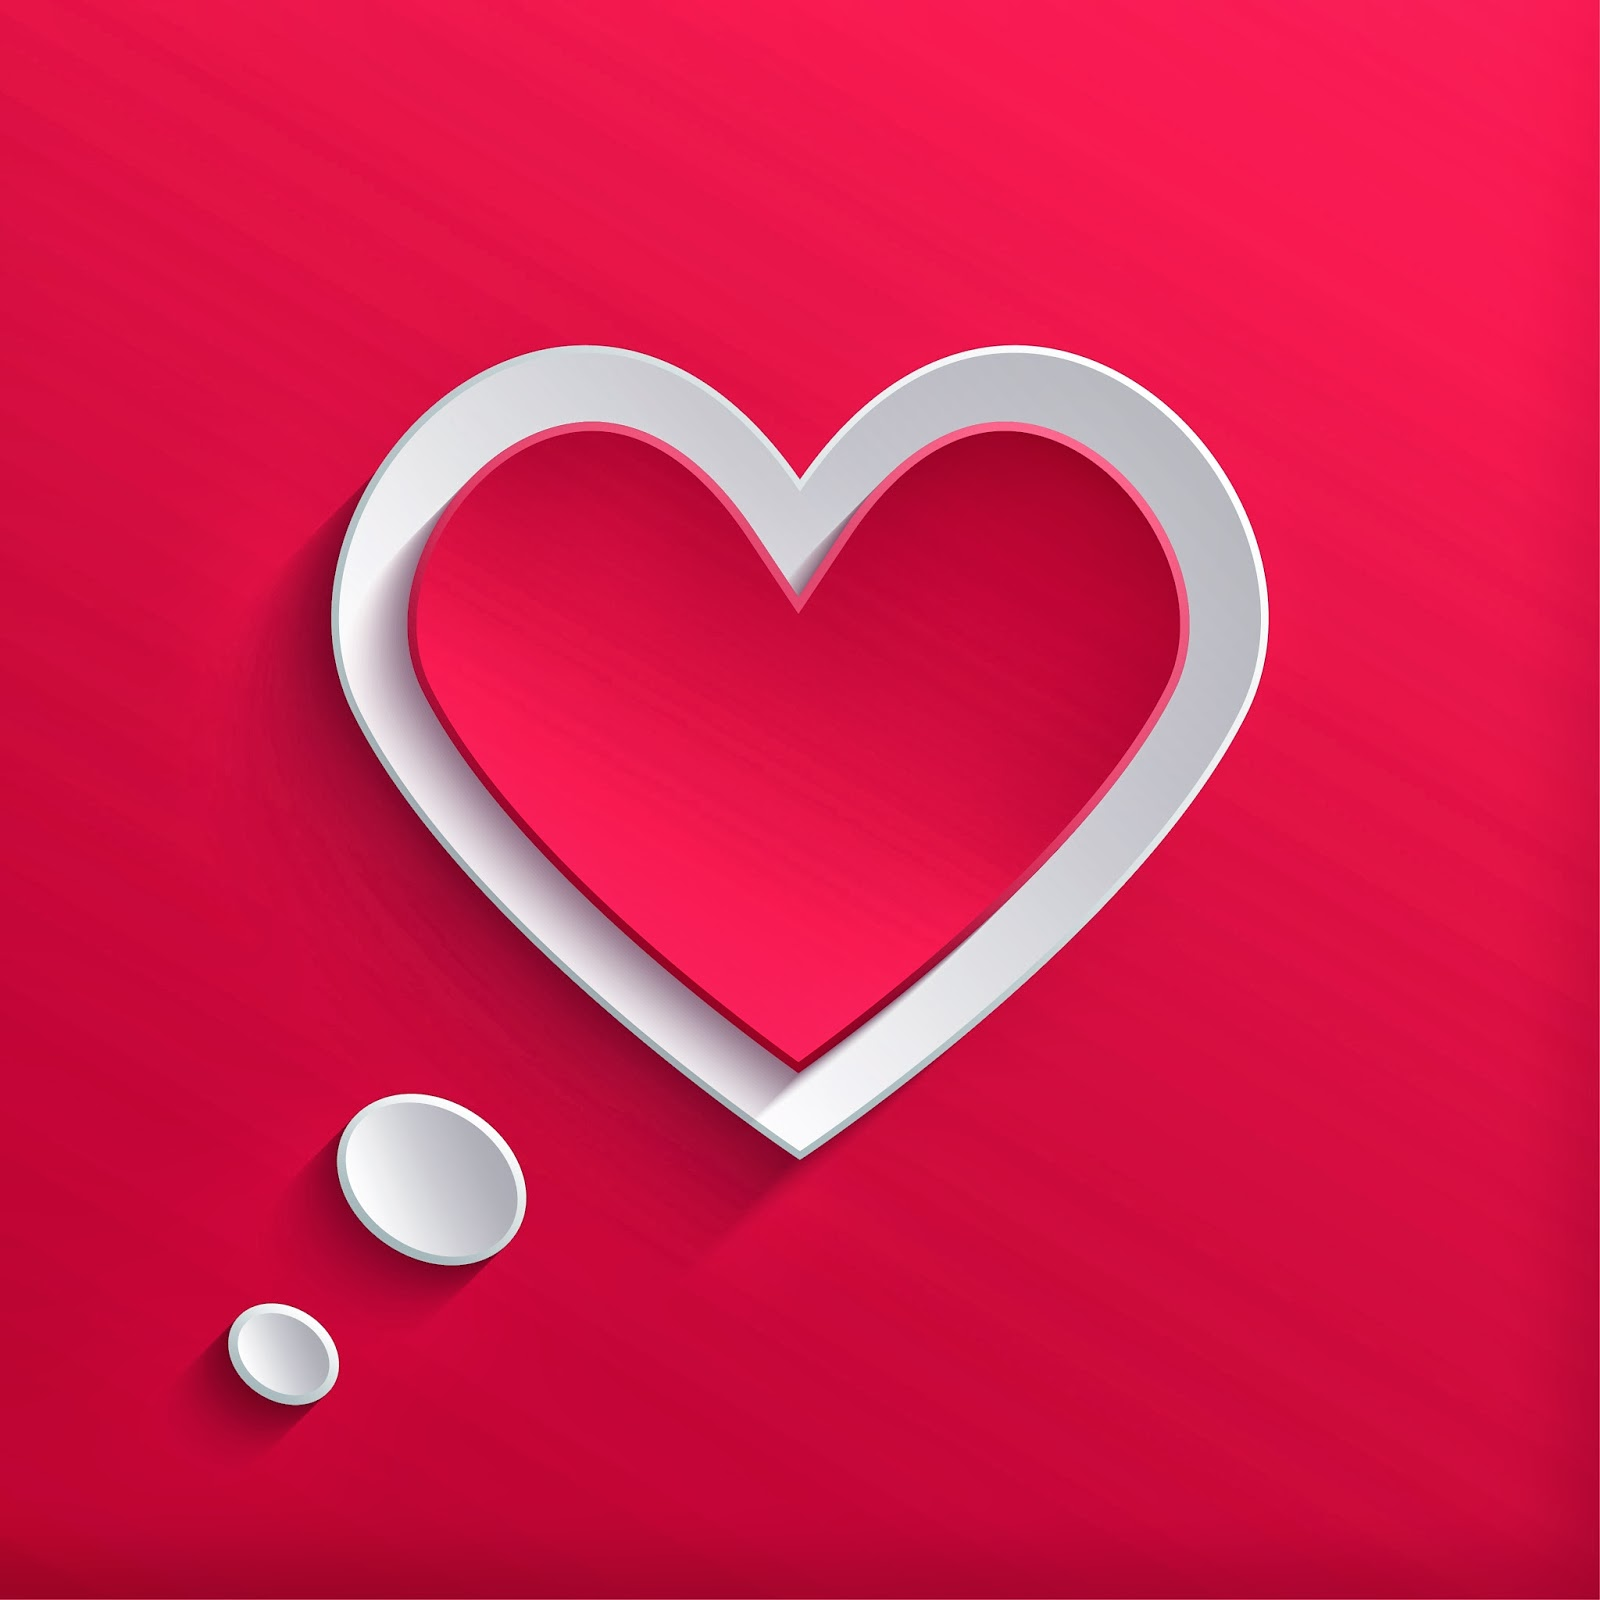 valentine day 2015 hearts wallpaper - most popular wallpapers